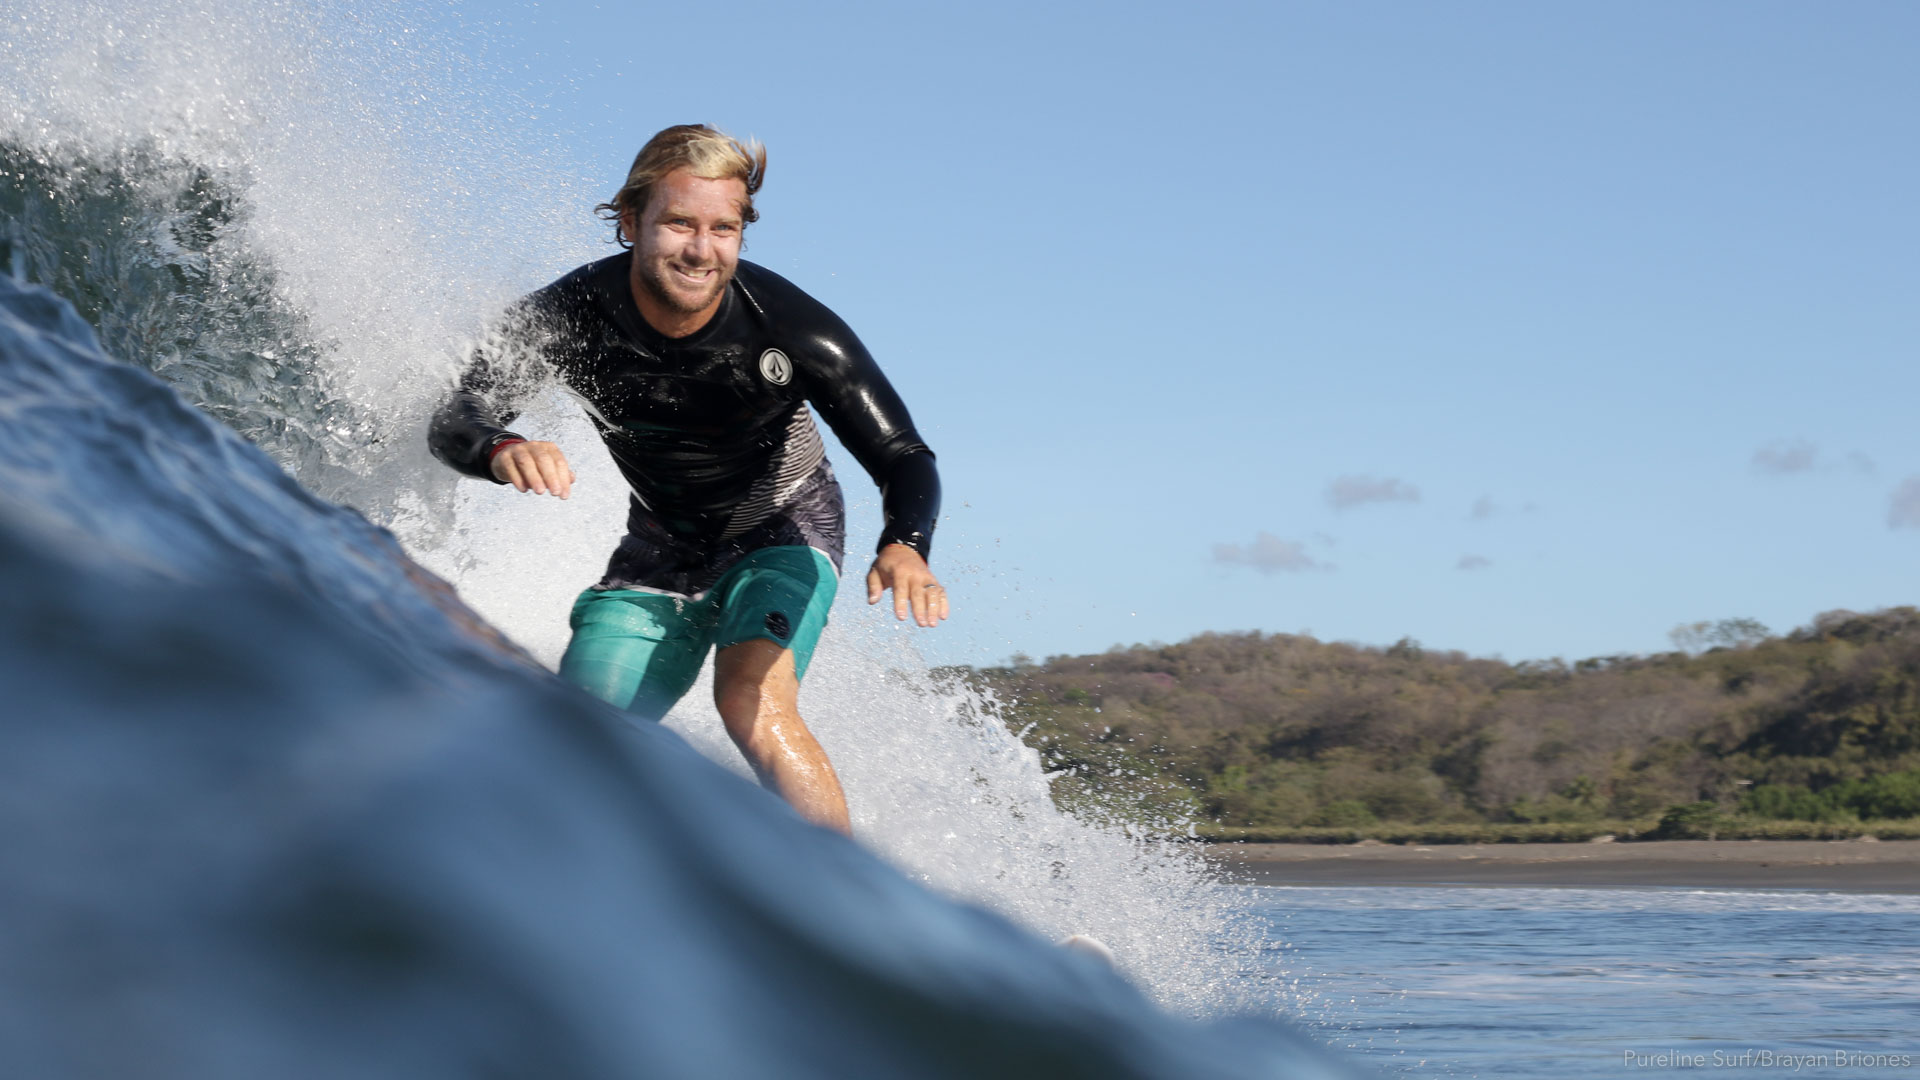 Pureline Surf's coach, Alex smiling as he surfs down the line in Costa Rica.